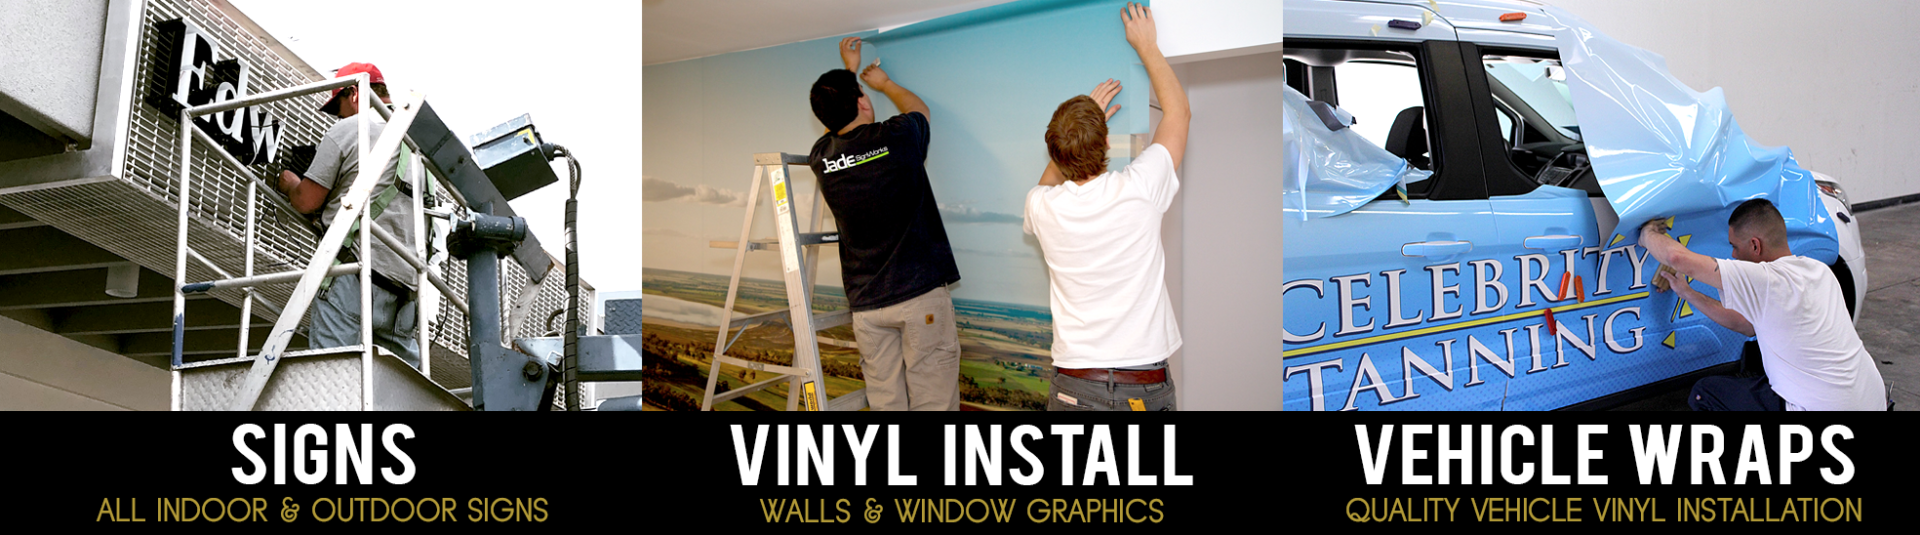 vinyl_and_sign_installation_Image